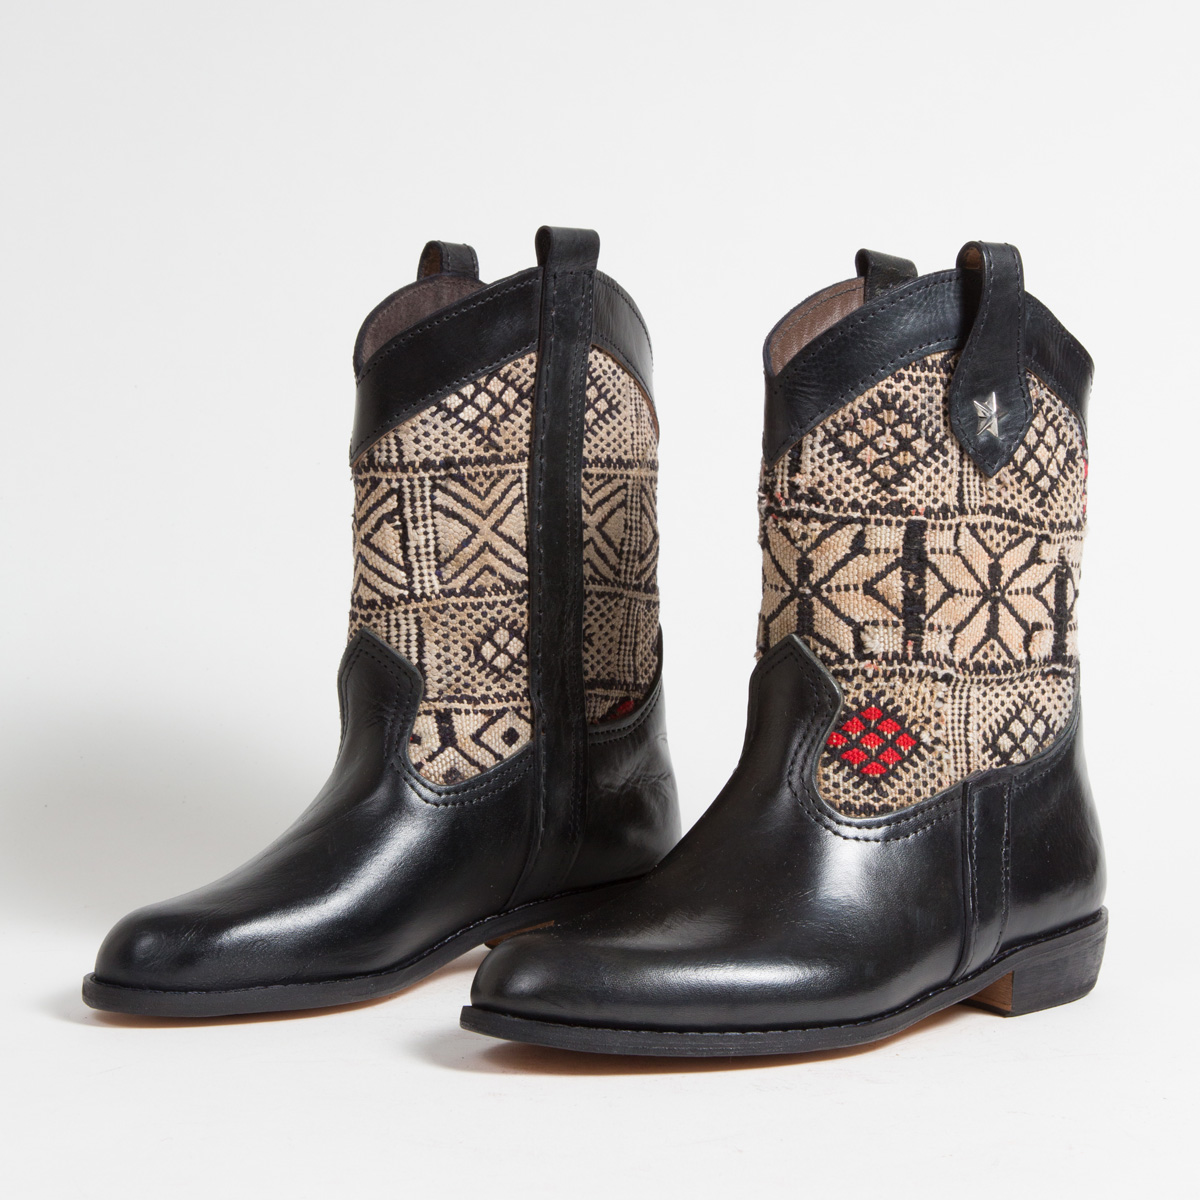 Bottines Kilim cuir mababouche artisanales (Réf. MN10-39)